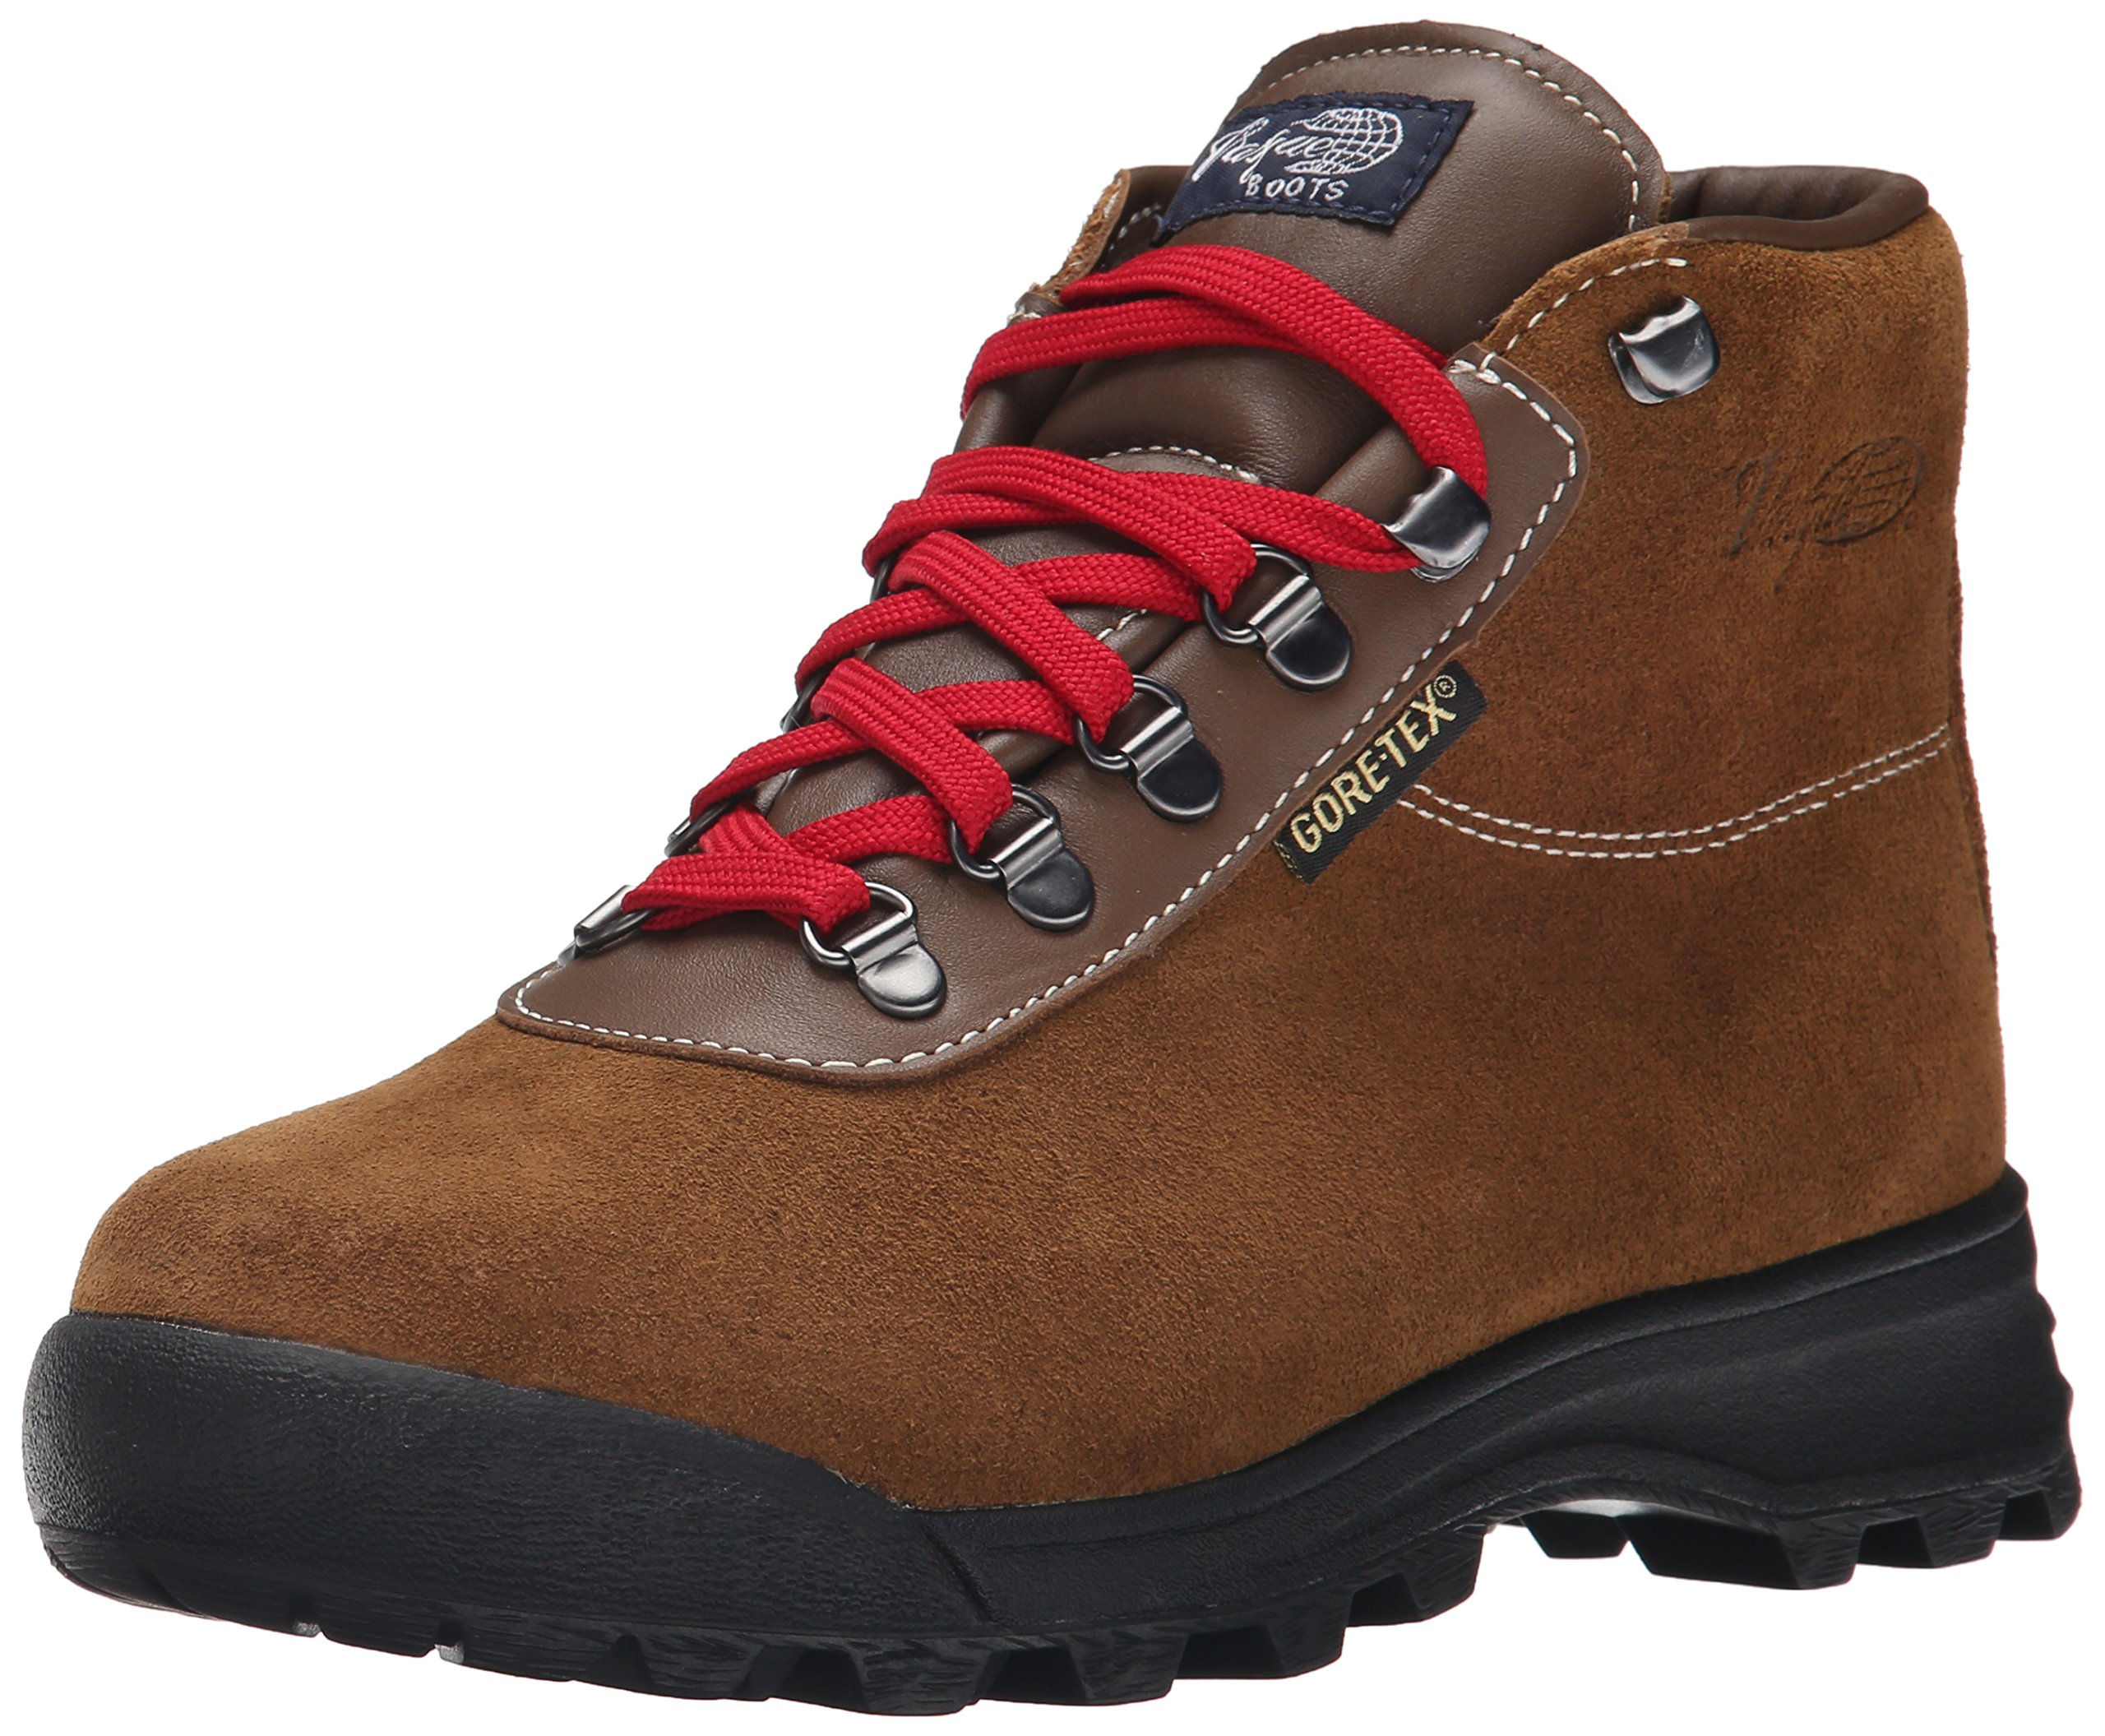 Vasque Women's Sundowner Gore-Tex Backpacking Boot, Hawthorne,9 M US